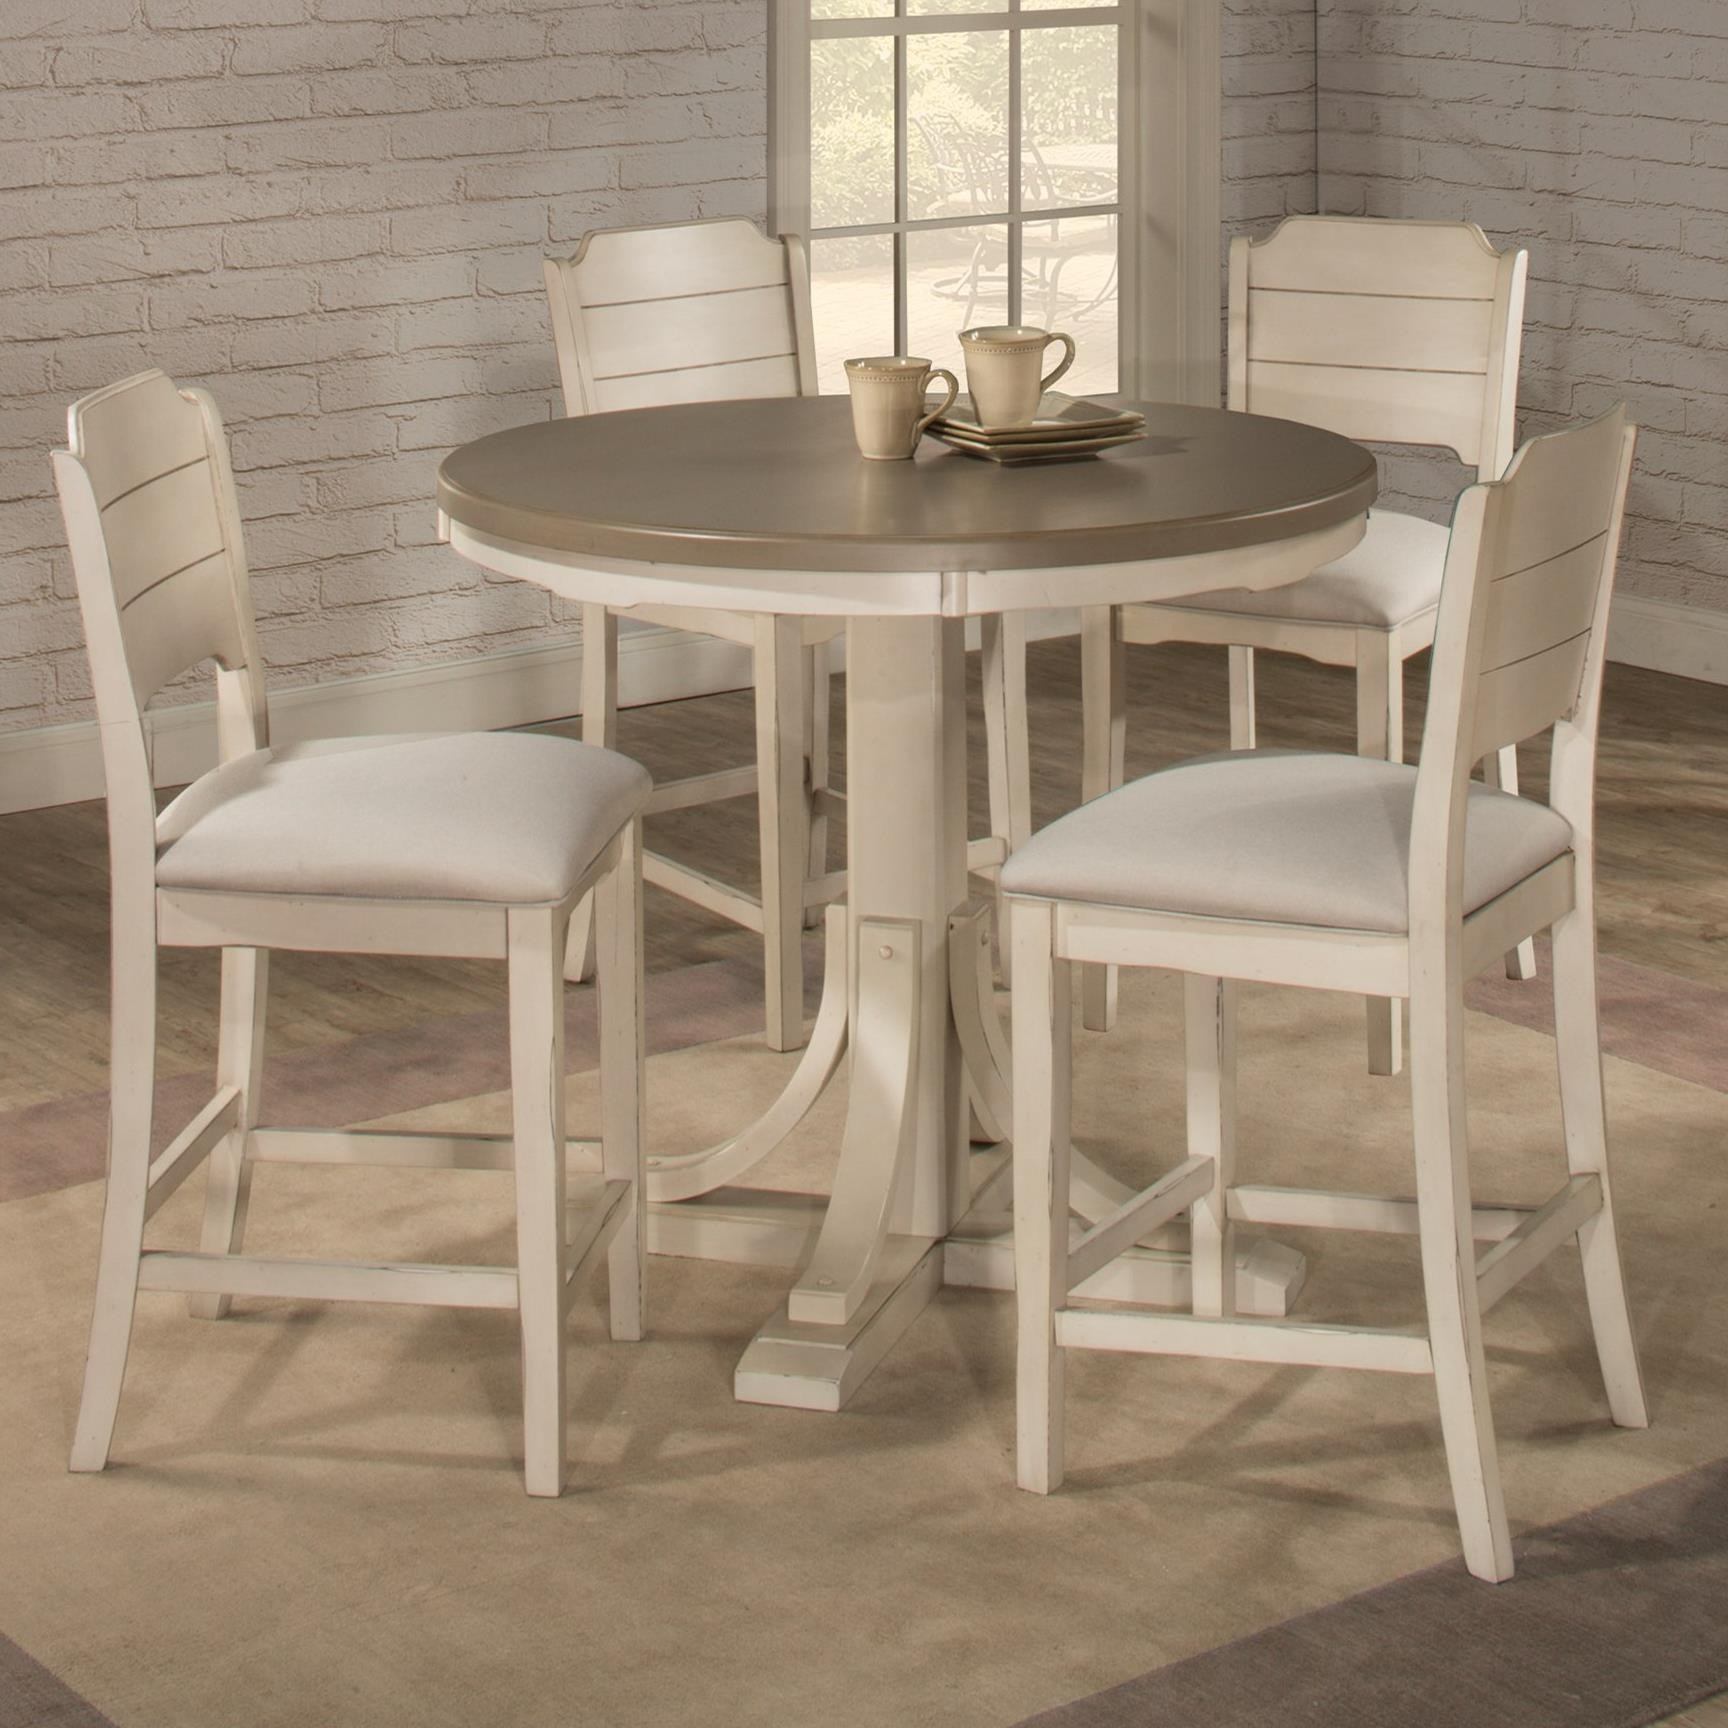 Clarion 5-Piece Counter Height Dining Set at Ruby Gordon Home